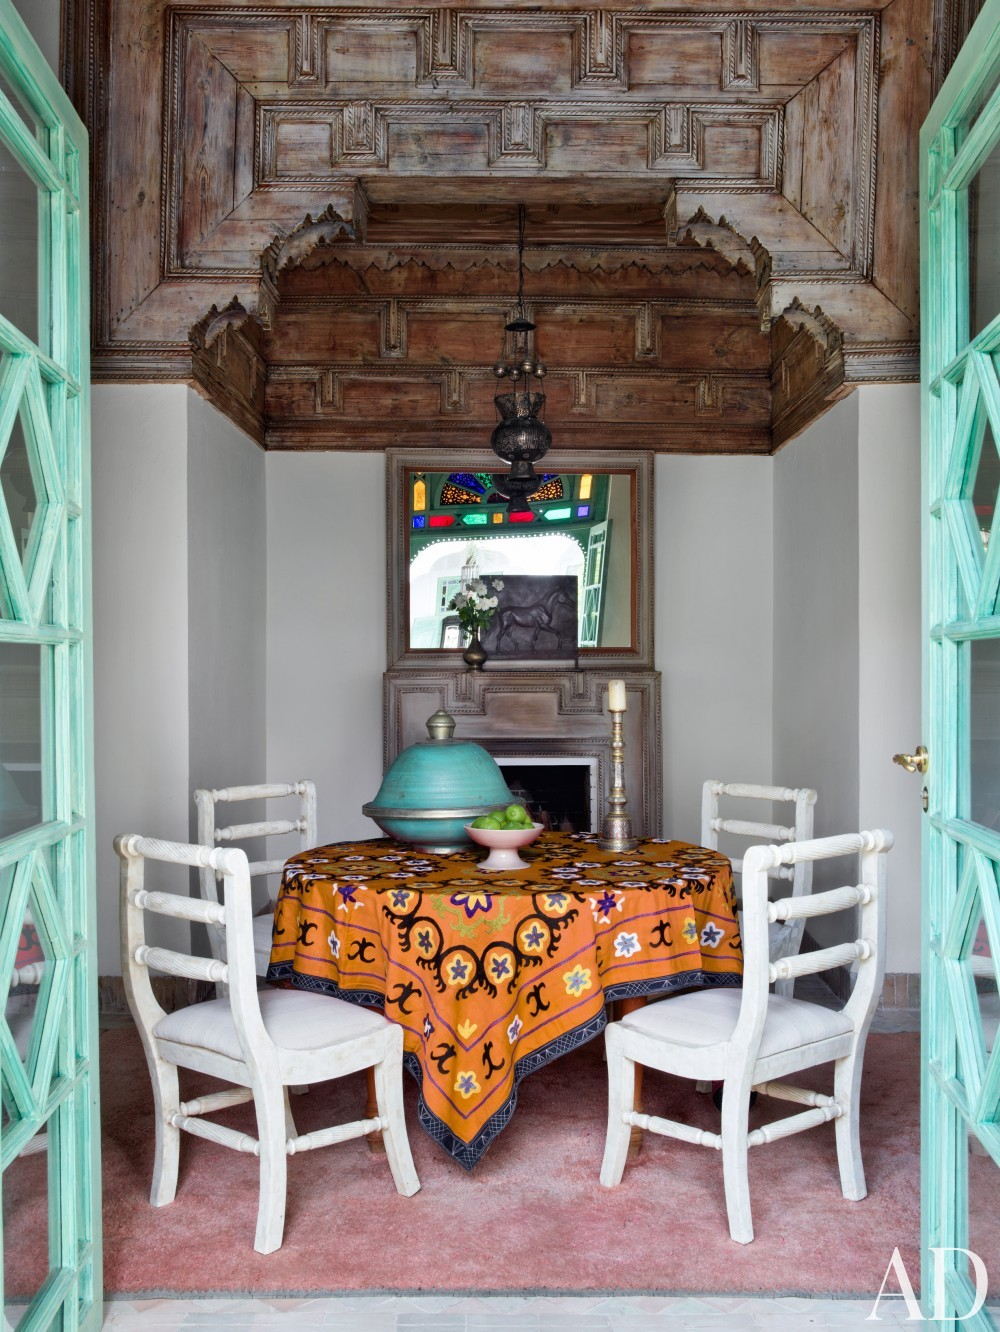 Exotic Dining Room by Ahmad Sardar-Afkhami in Marrakech, Morocco